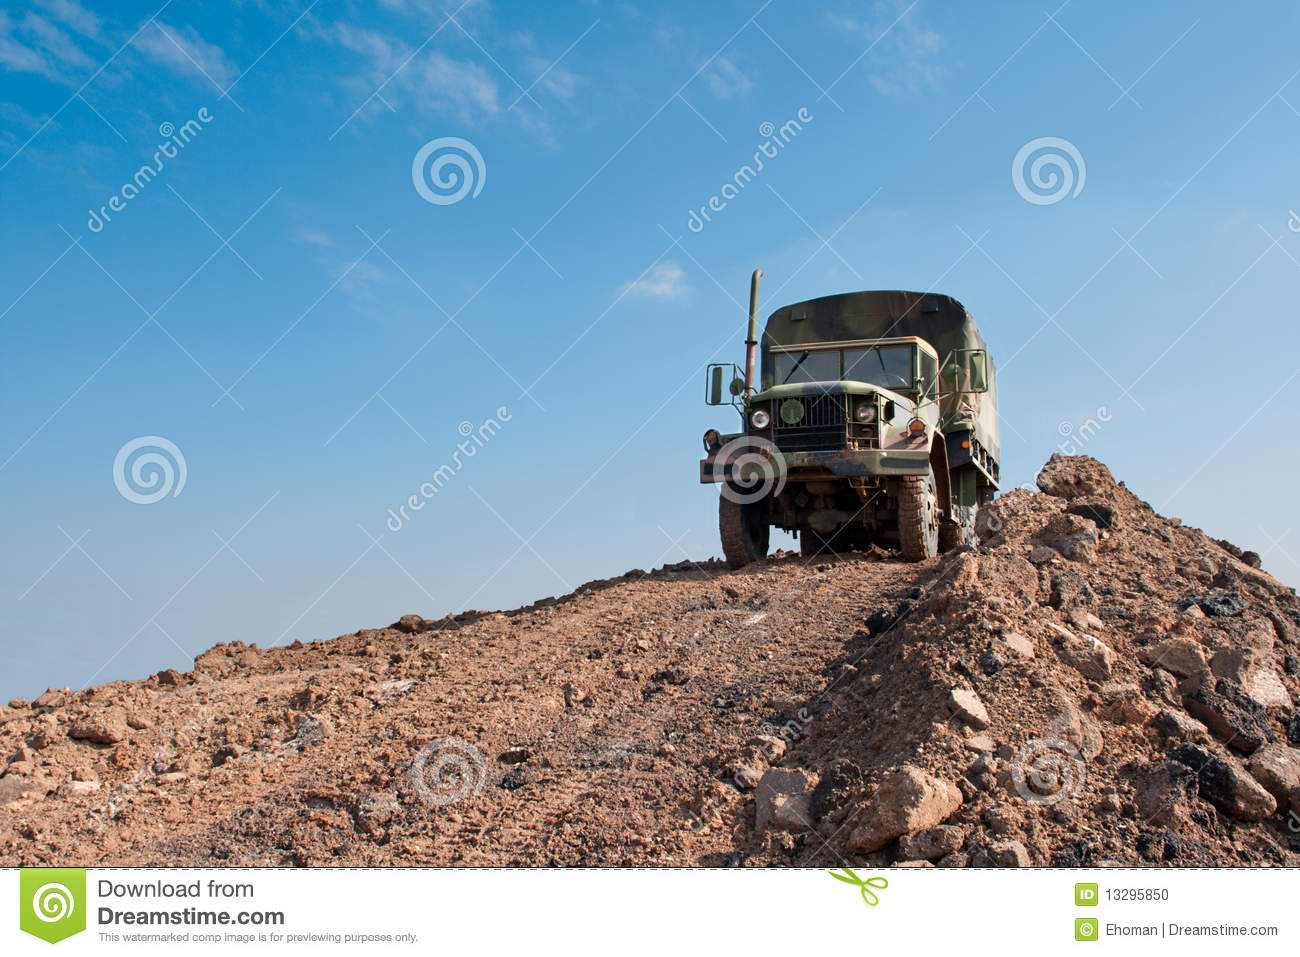 Military Truck On A Dirt Hill Stock Photo   Image  13295850